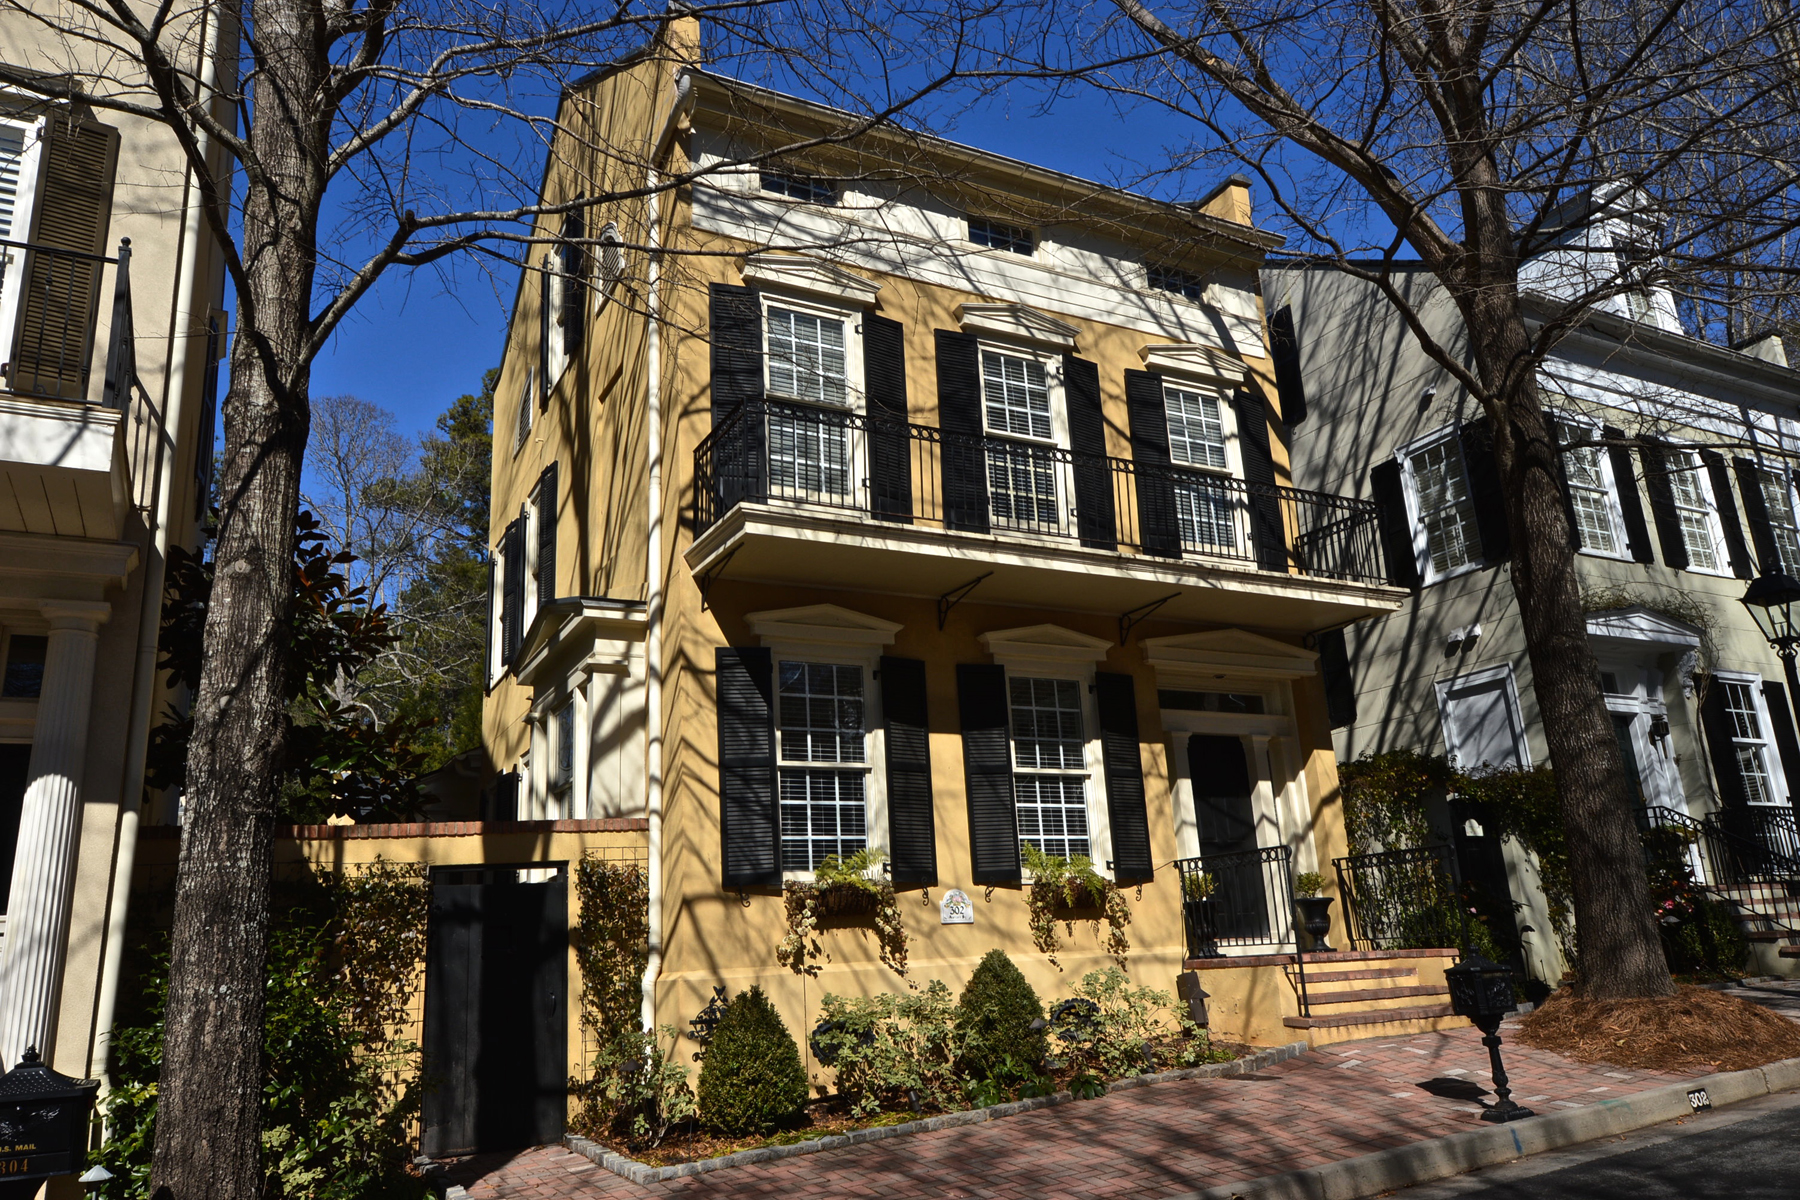 Property For Sale at Classic Detached Townhouse With Master On Main In North Cove